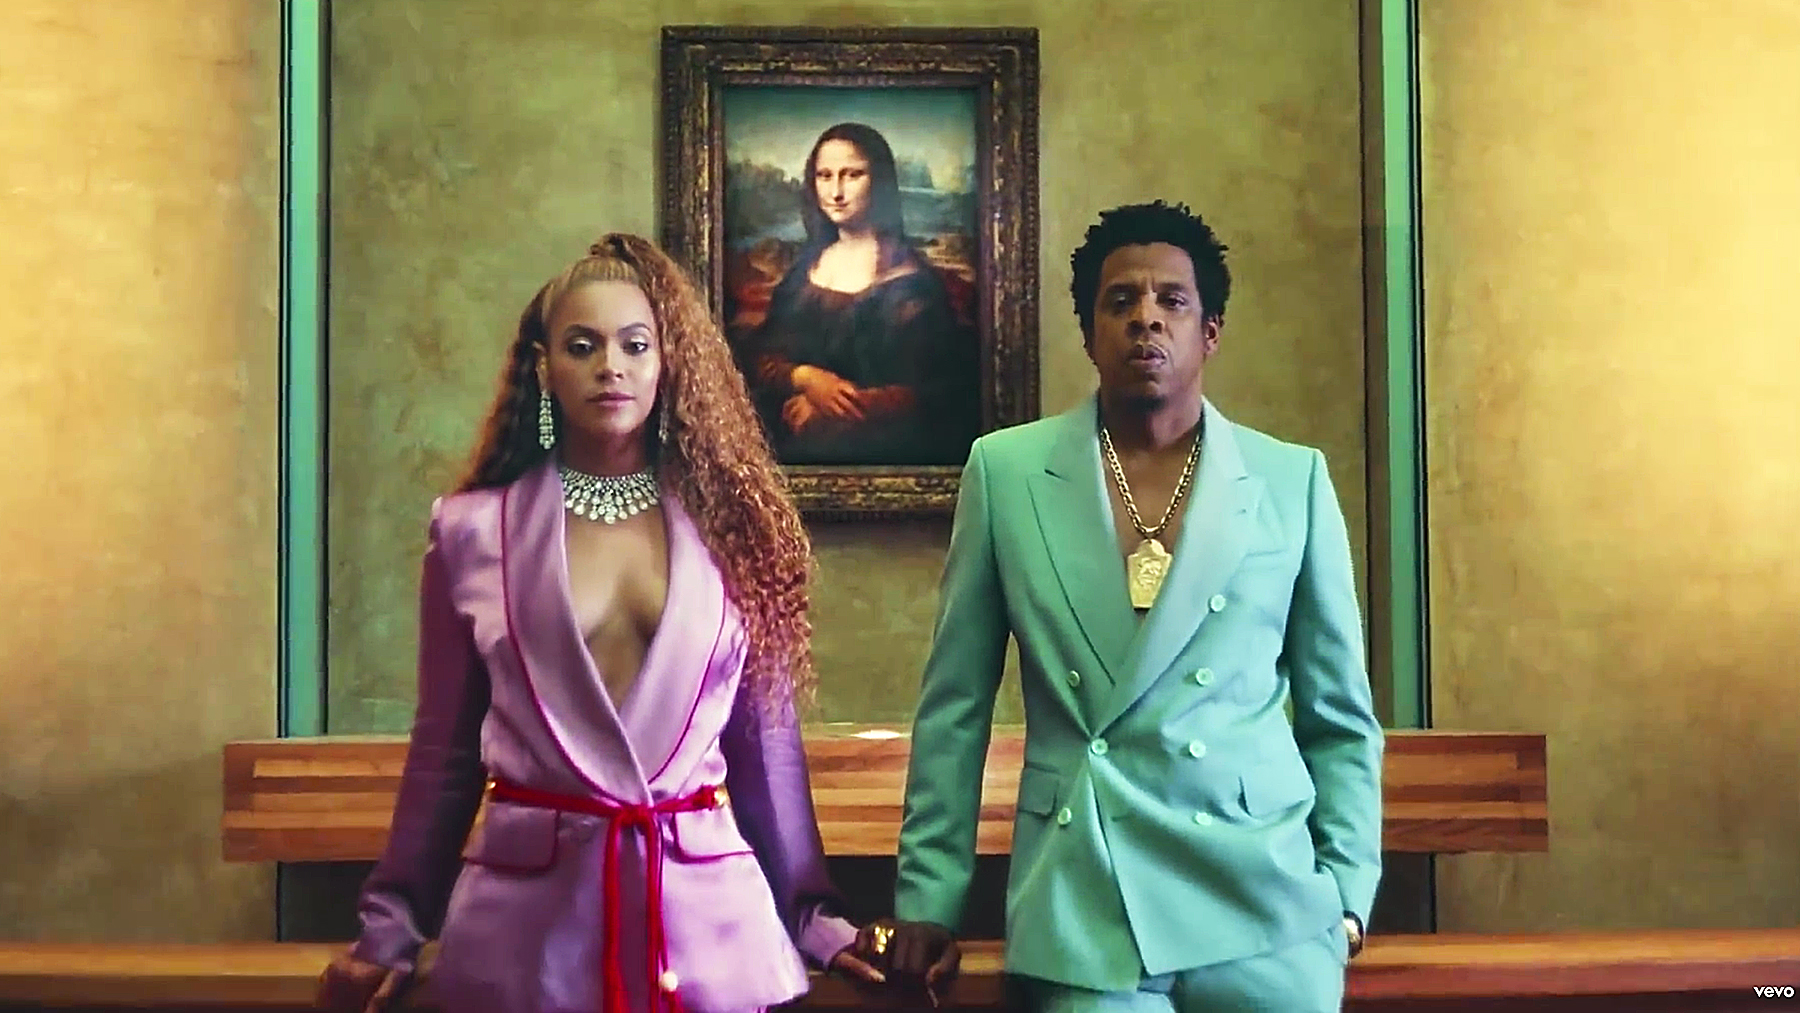 """Beyonce Jay Z Apeshit - The Carters surprised fans with the release of their long-rumored joint album, Everything Is Love. The same day, they dropped a music video for the project's lead single, """"Apes--t,"""" which they filmed at the Louvre museum in Paris."""